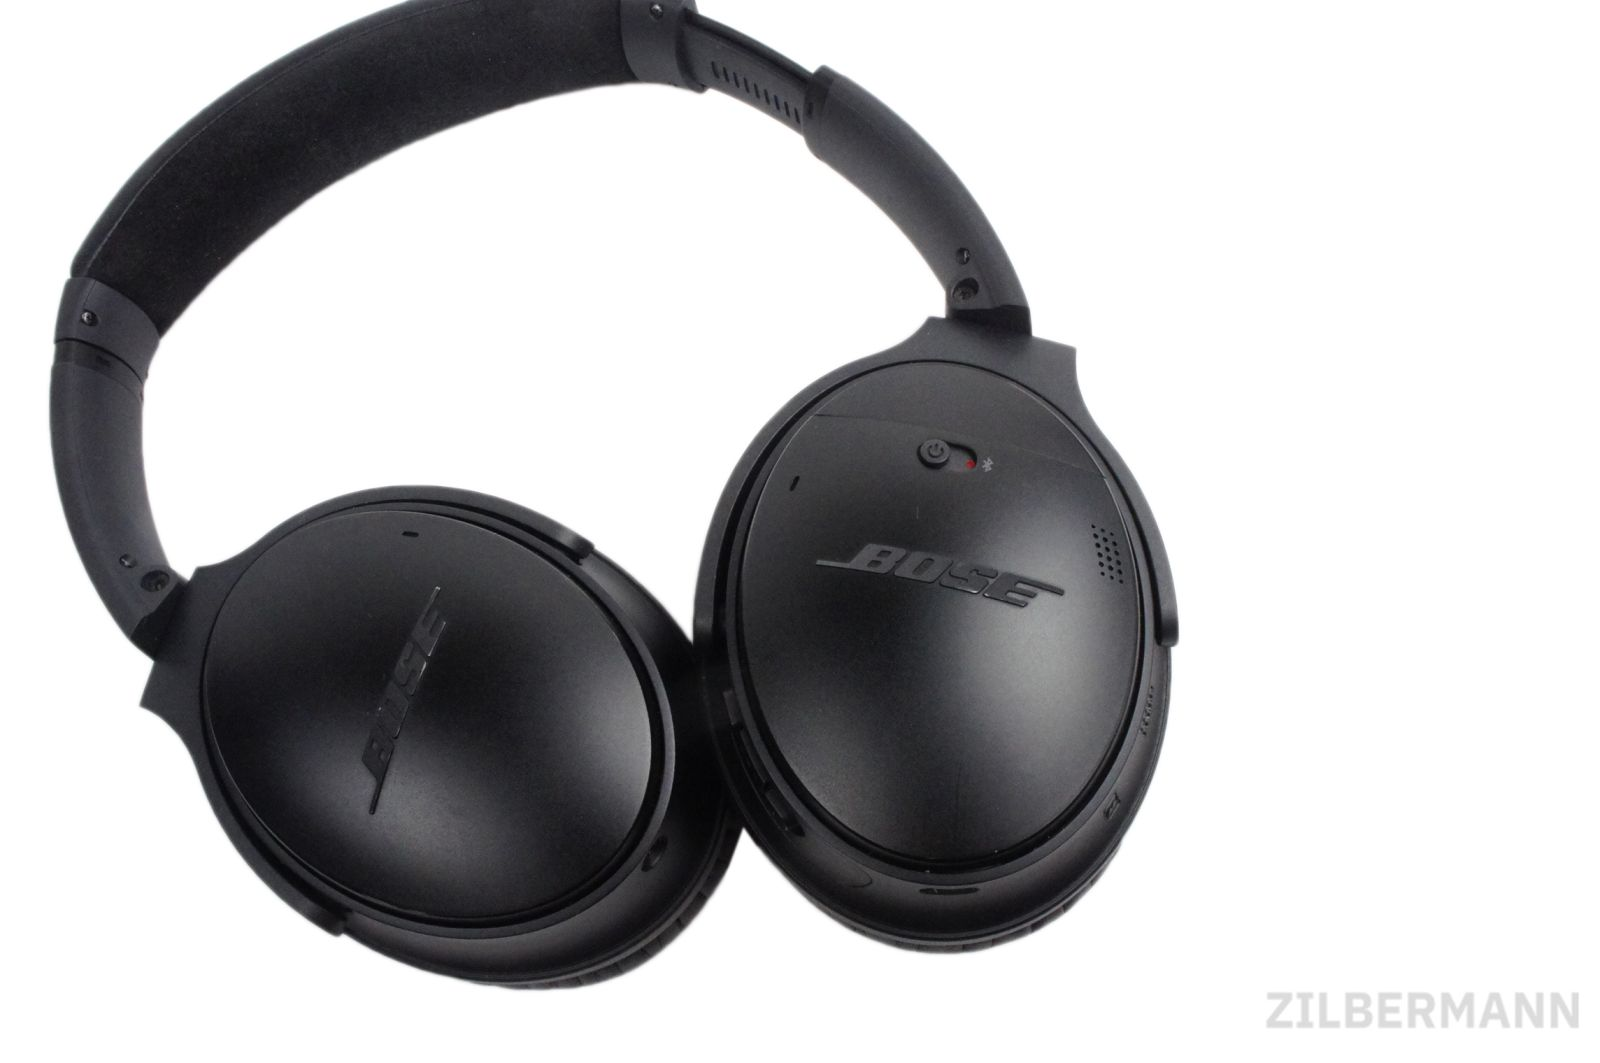 Bose_QuietComfort_35_QC_35_Kopfhorer_07